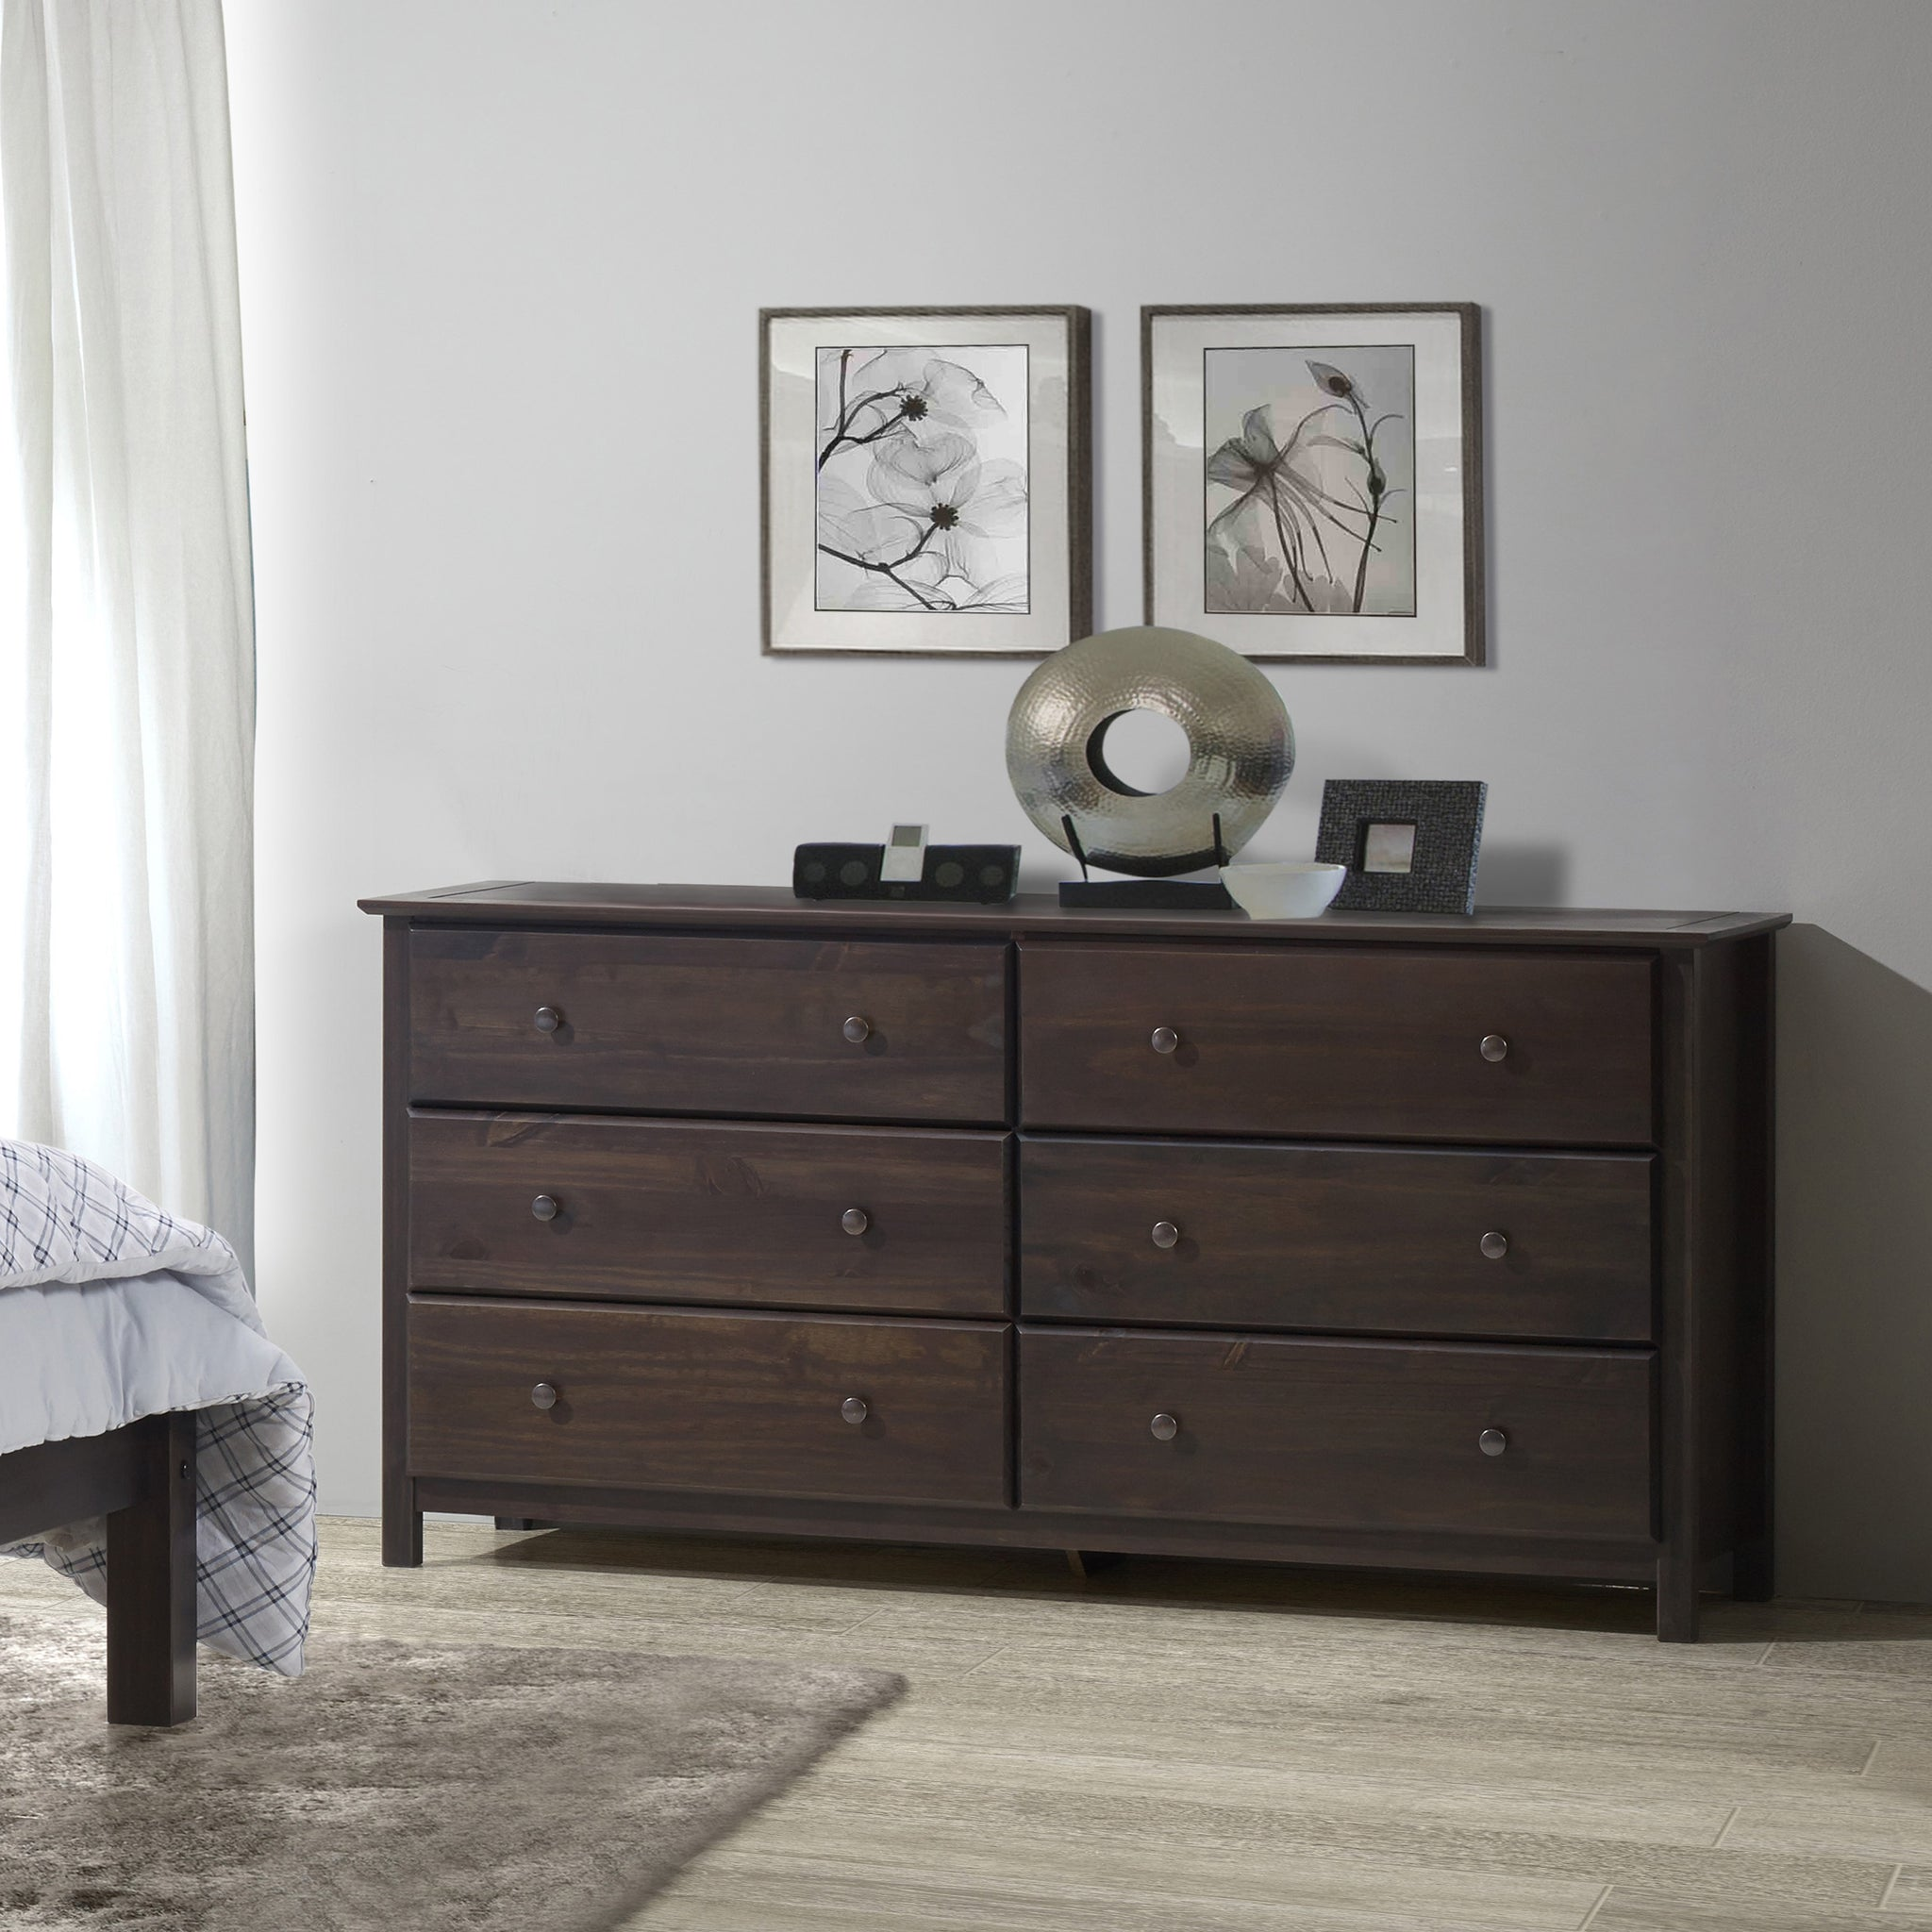 Pine Wood Shaker-style Six-drawer Dresser